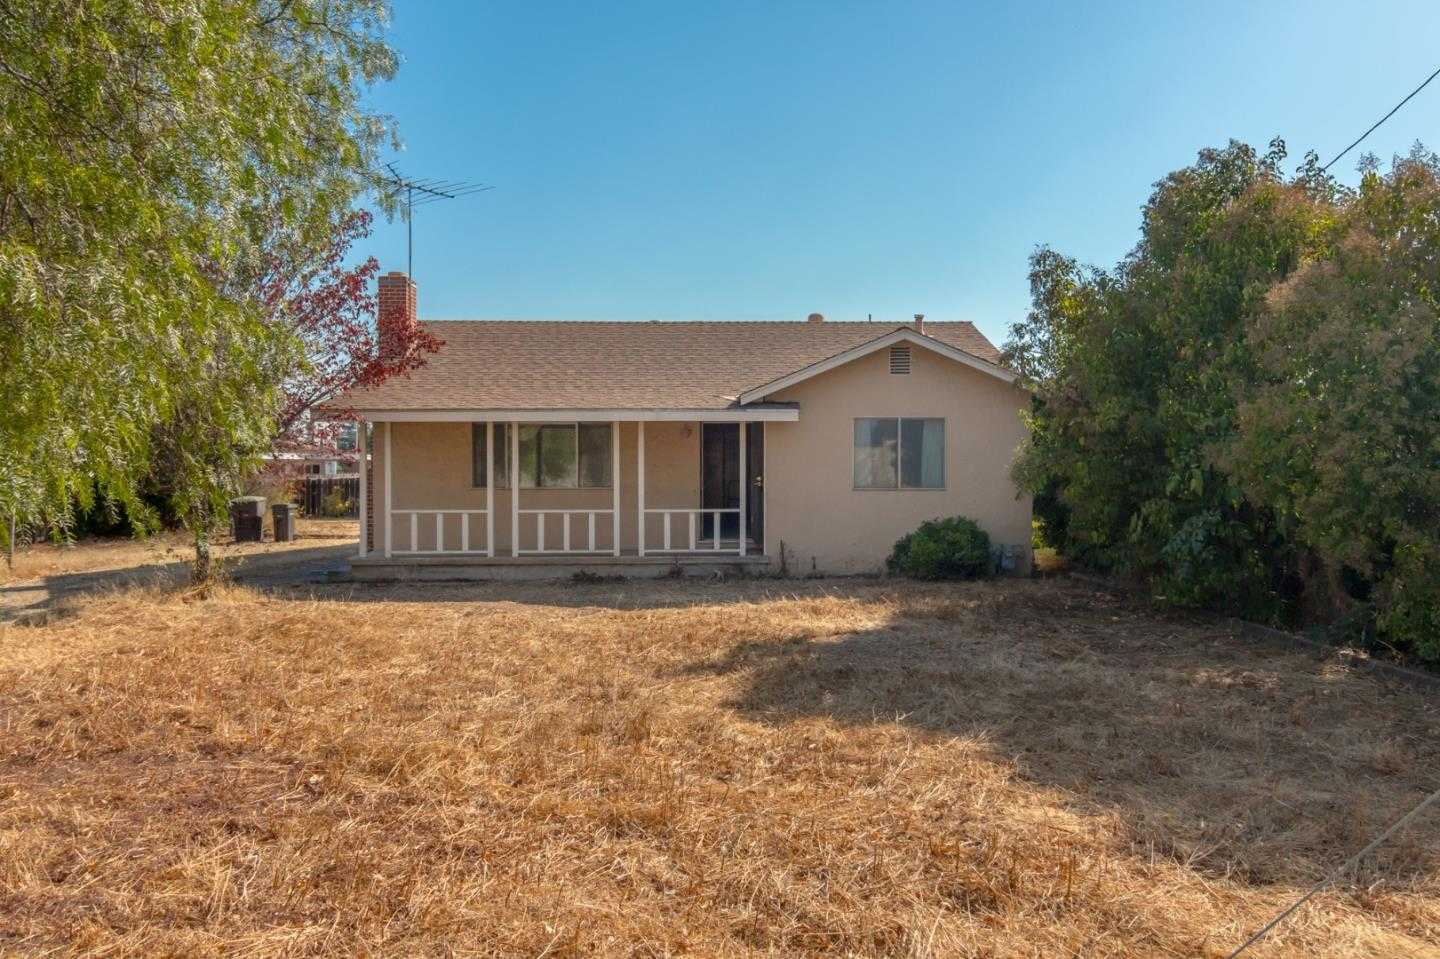 $1,025,000 - 2Br/1Ba -  for Sale in Campbell